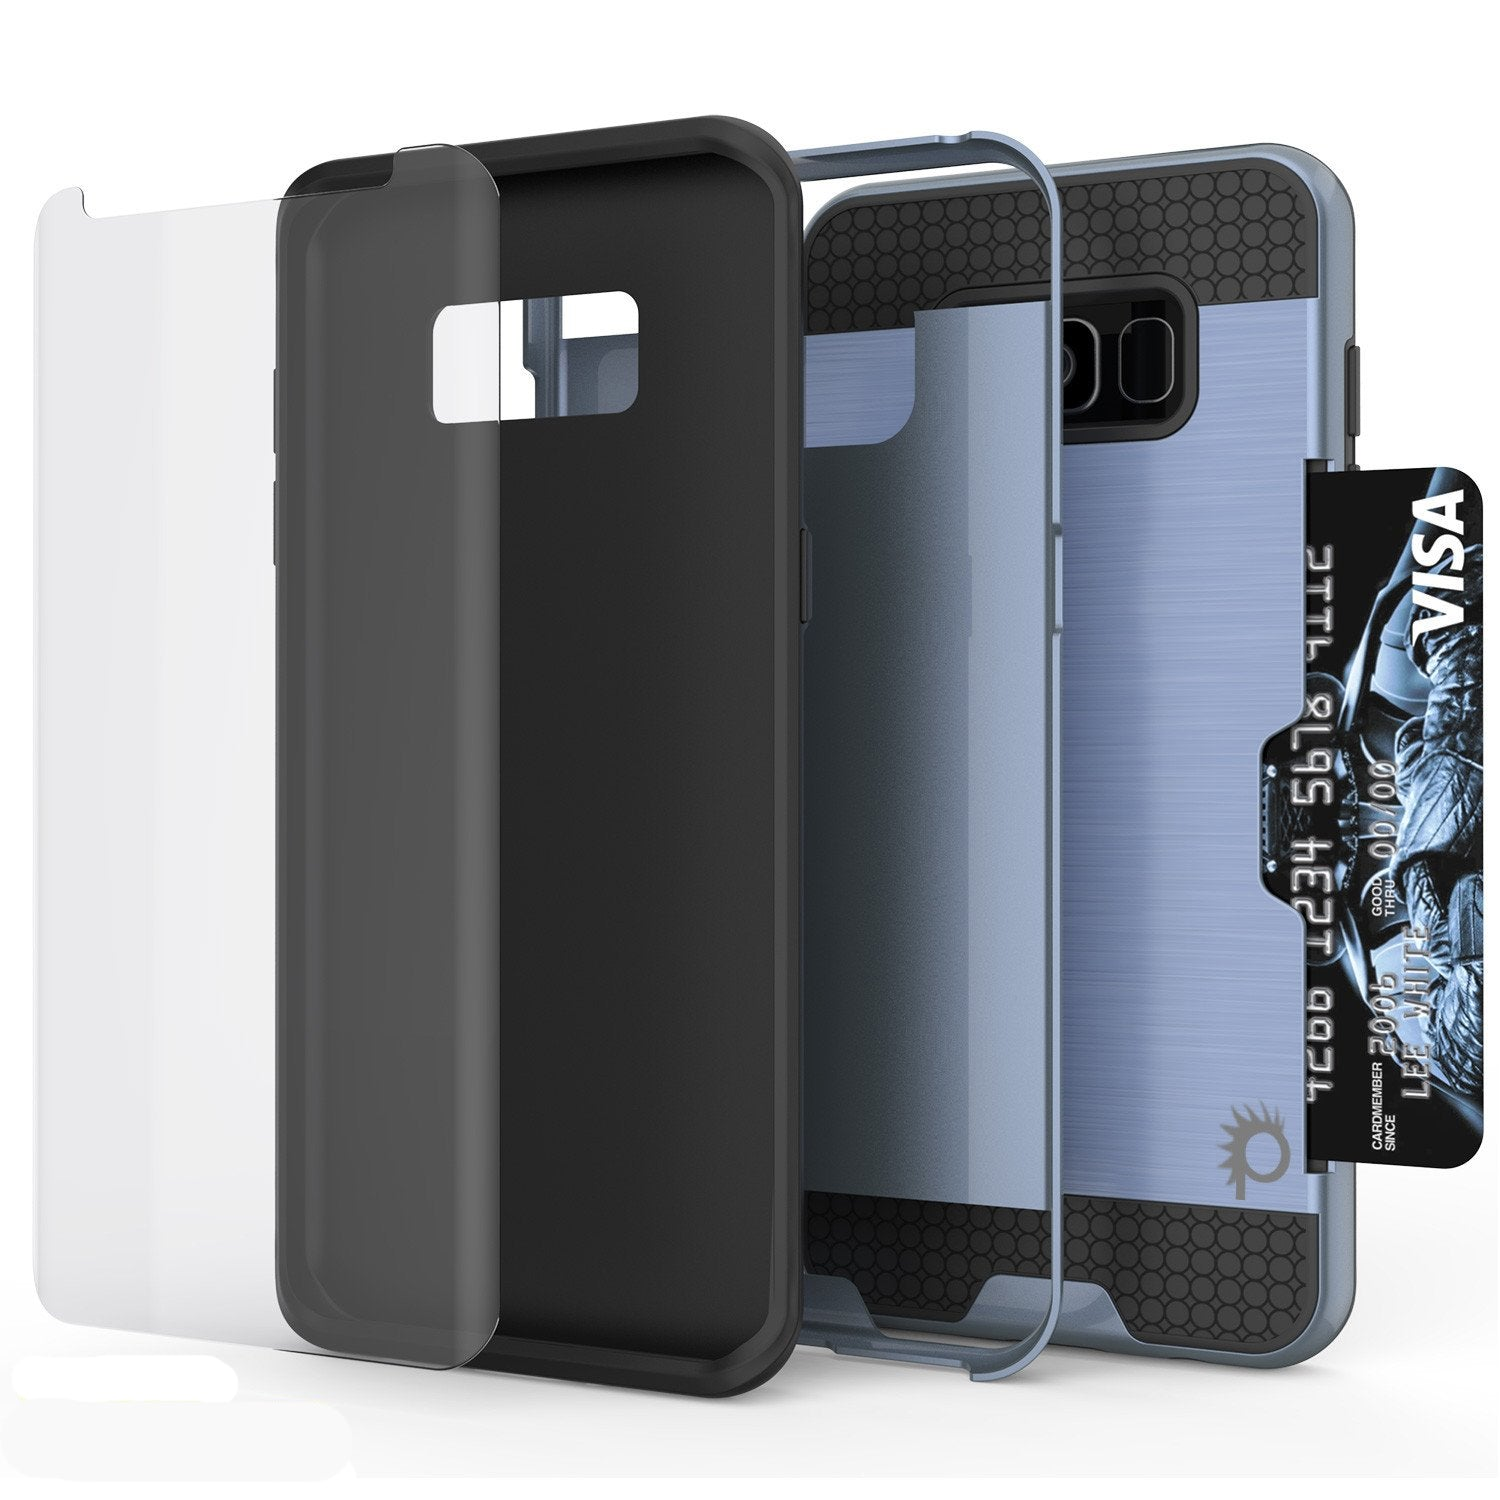 Galaxy S8 Case, PUNKcase [SLOT Series] Dual-Layer Armor Cover w/Integrated Anti-Shock System, Credit Card Slot & Screen Protector [Navy]